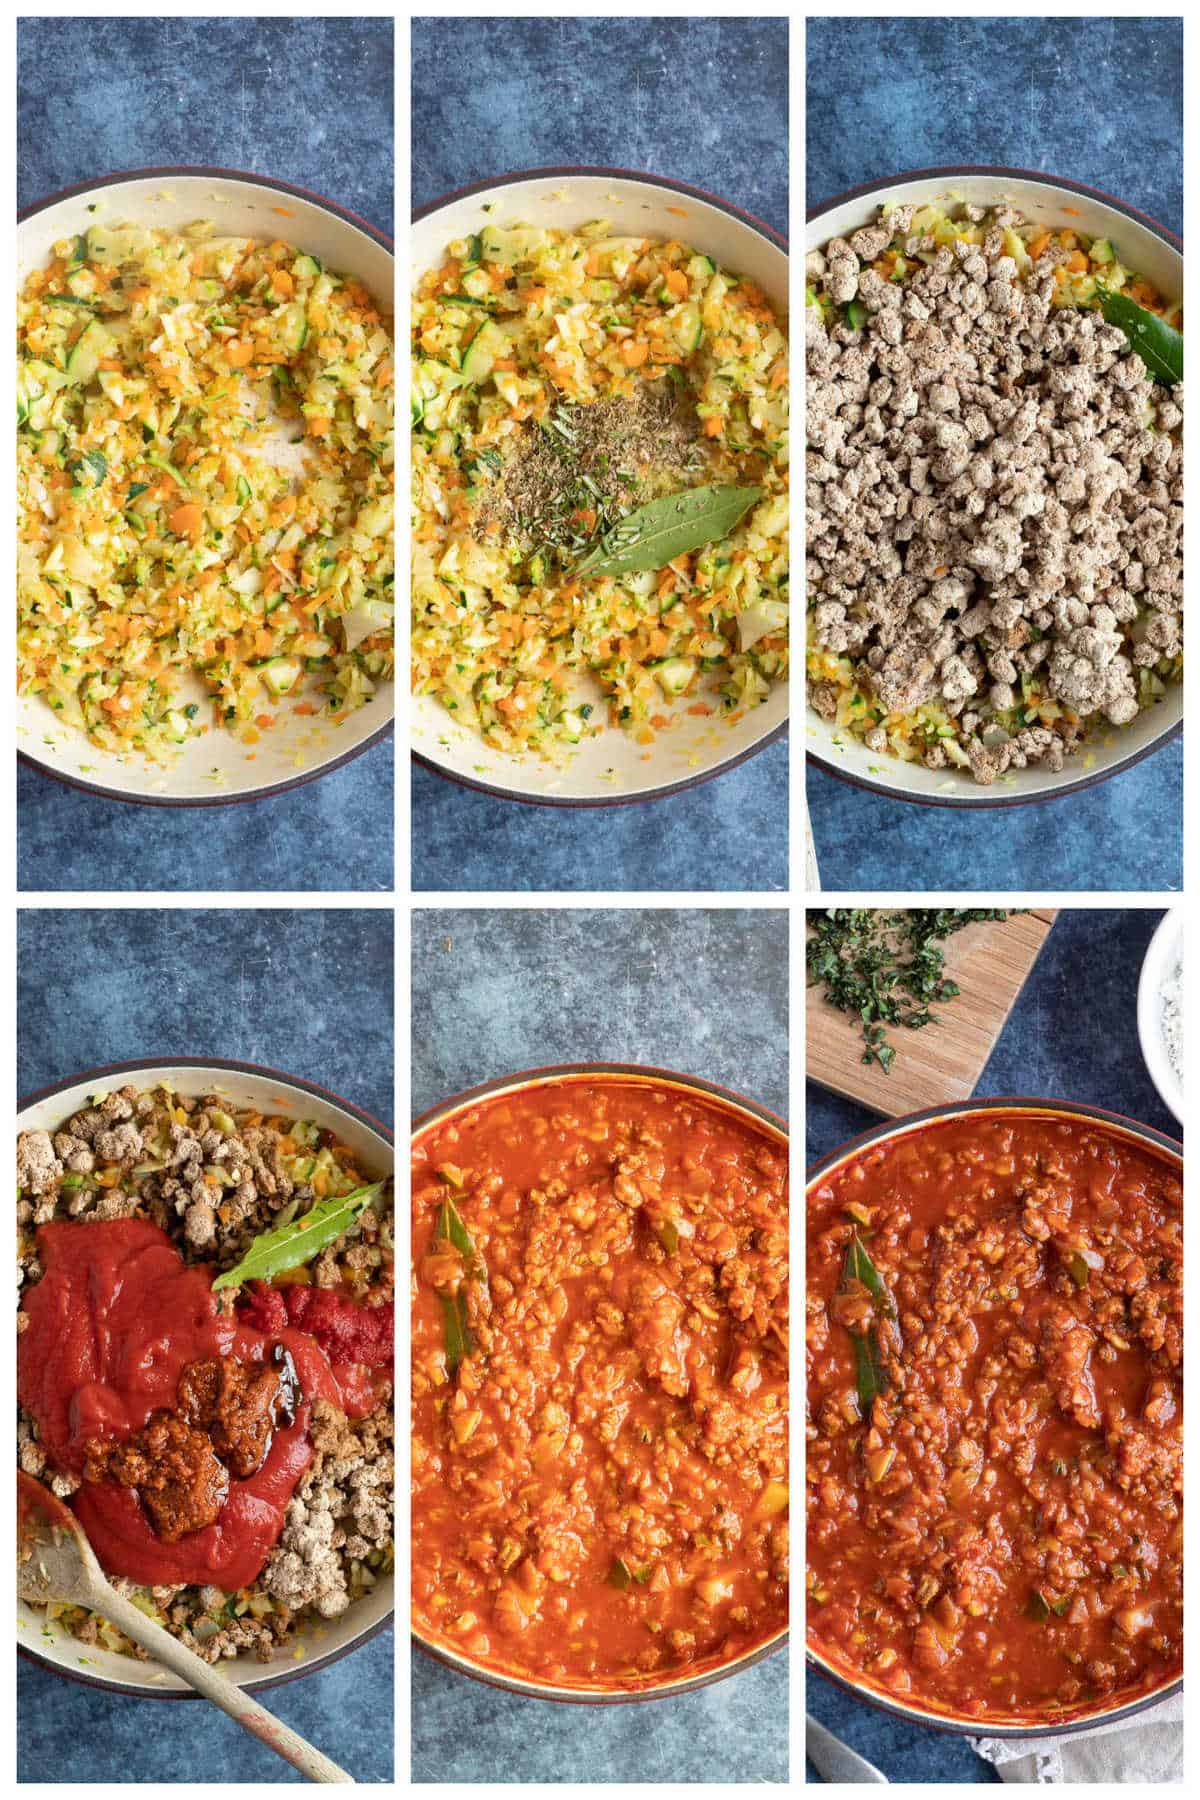 Step by step photo's for Quorn bolognese.